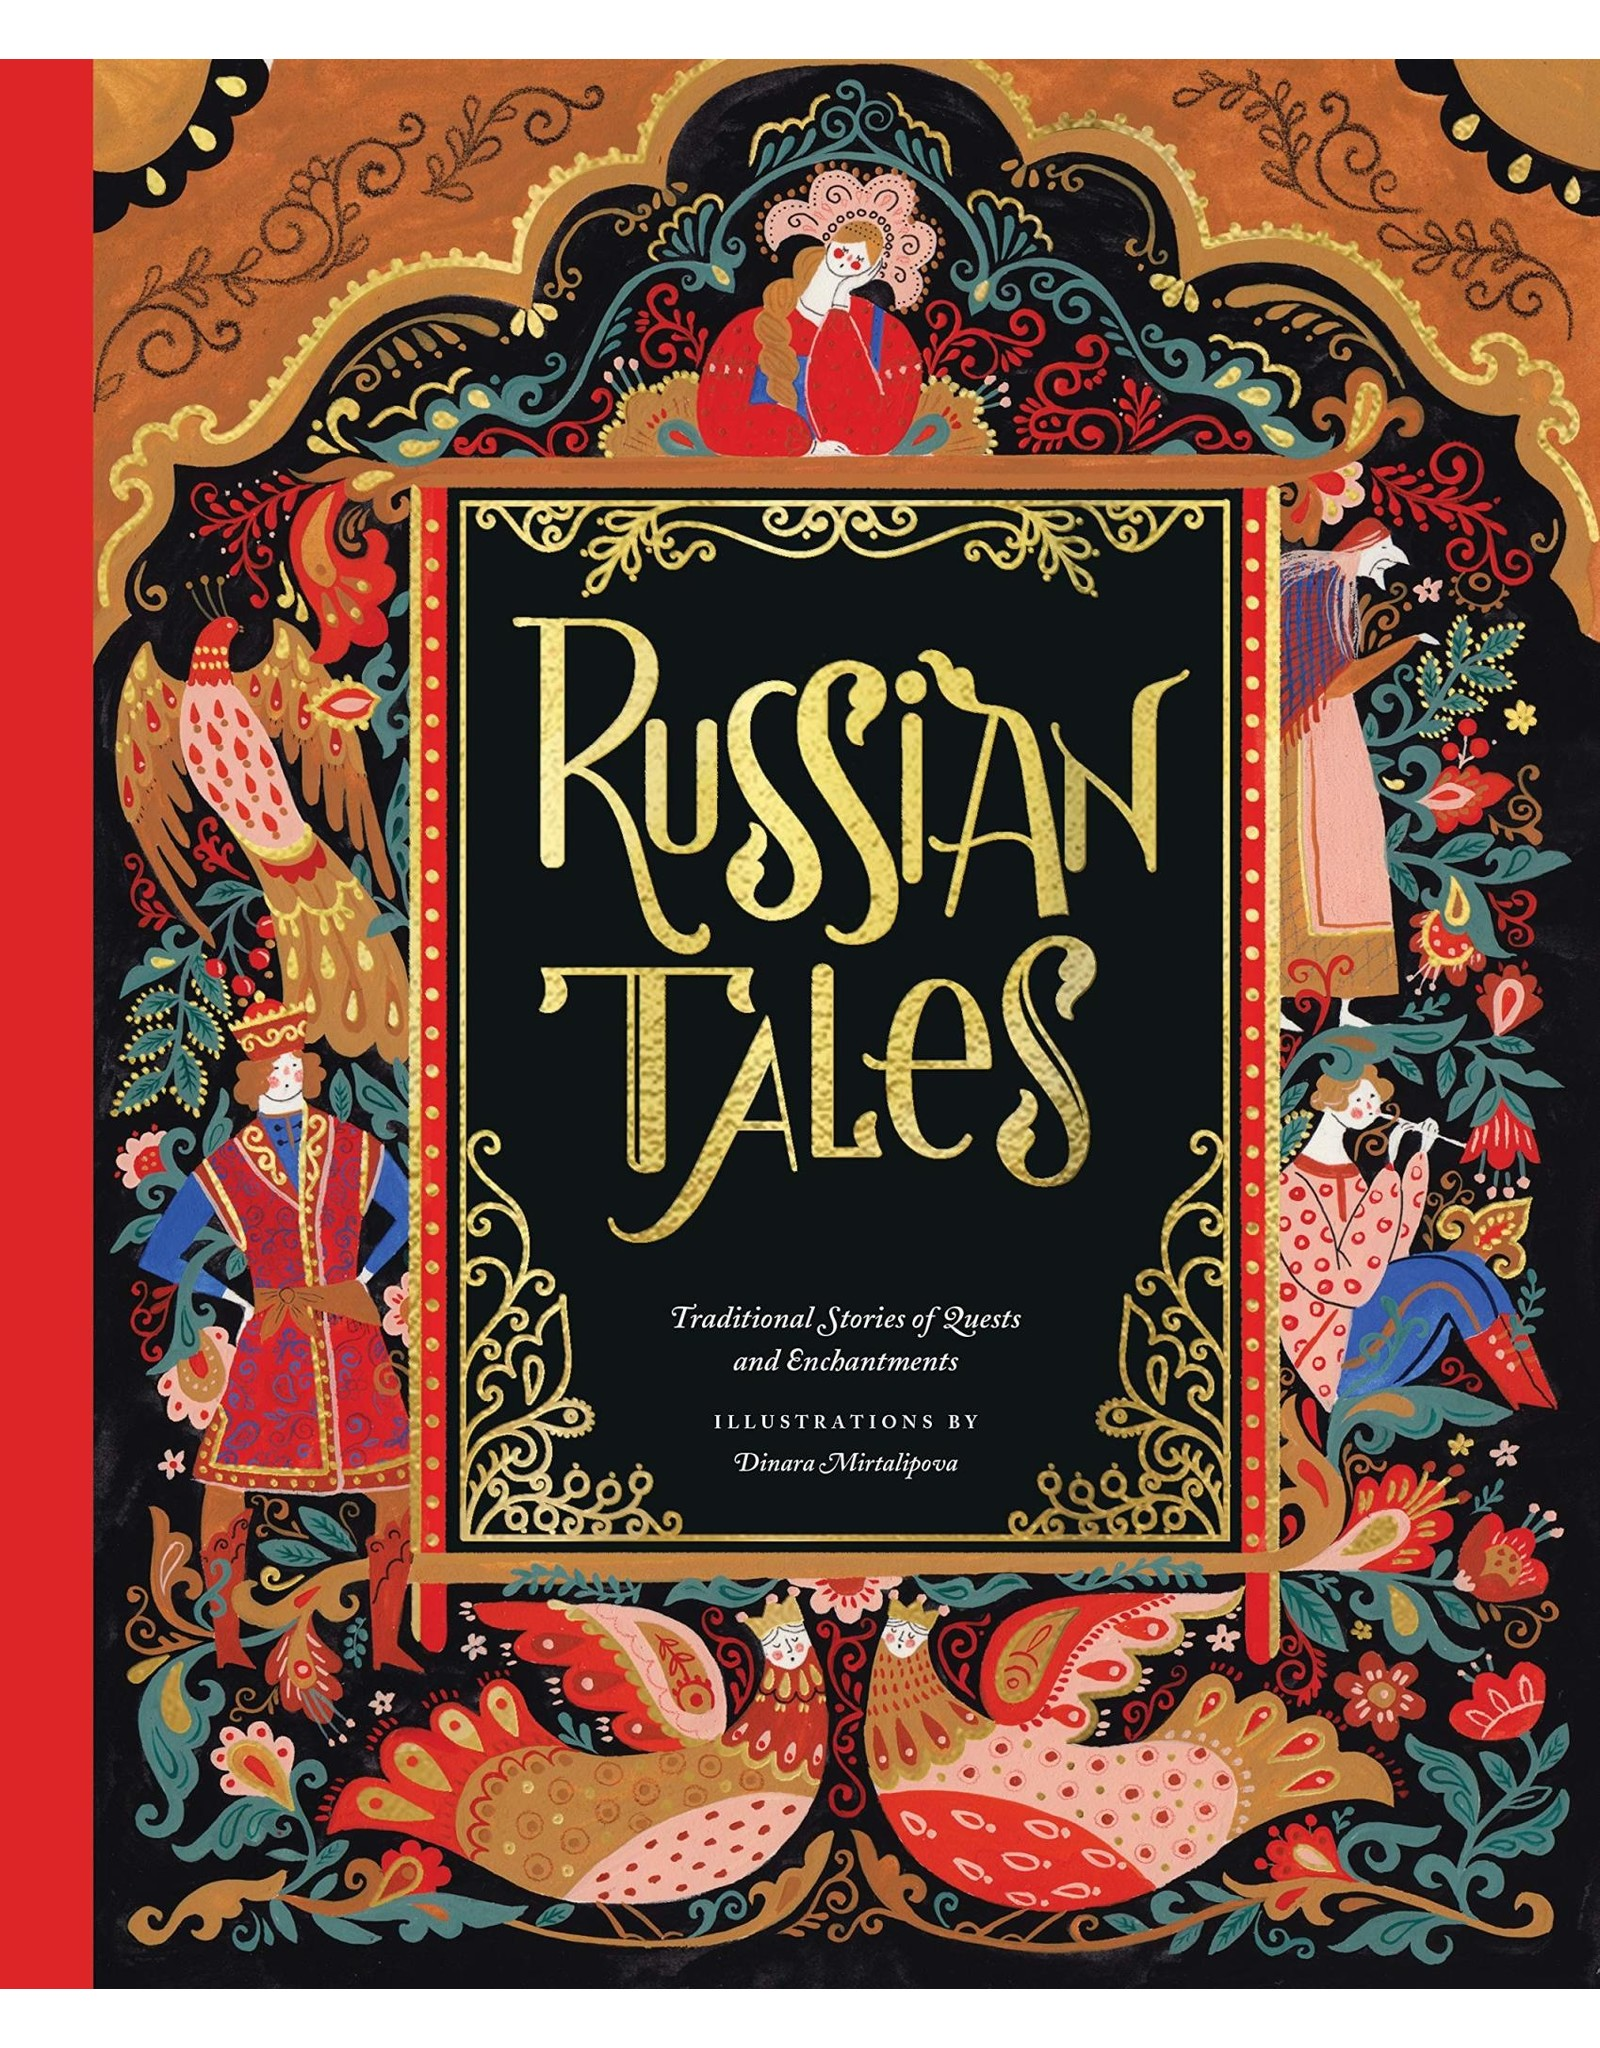 Russian Tales: Traditional Stories of Quests and Enchantments